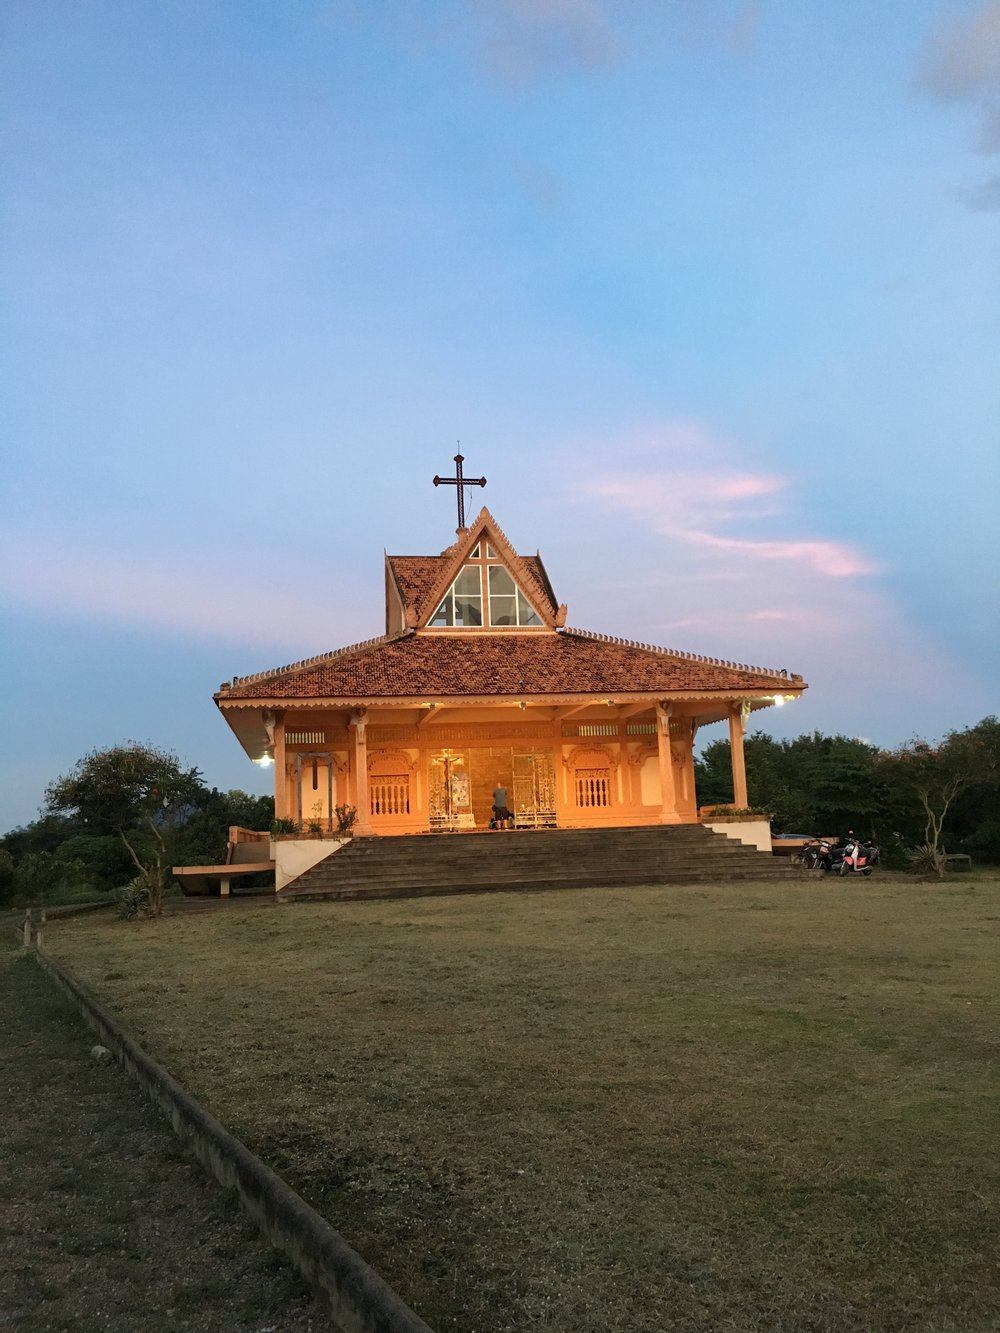 The Marist church in Pailin City, Cambodia. (Credit: Dene-Hern Chen)